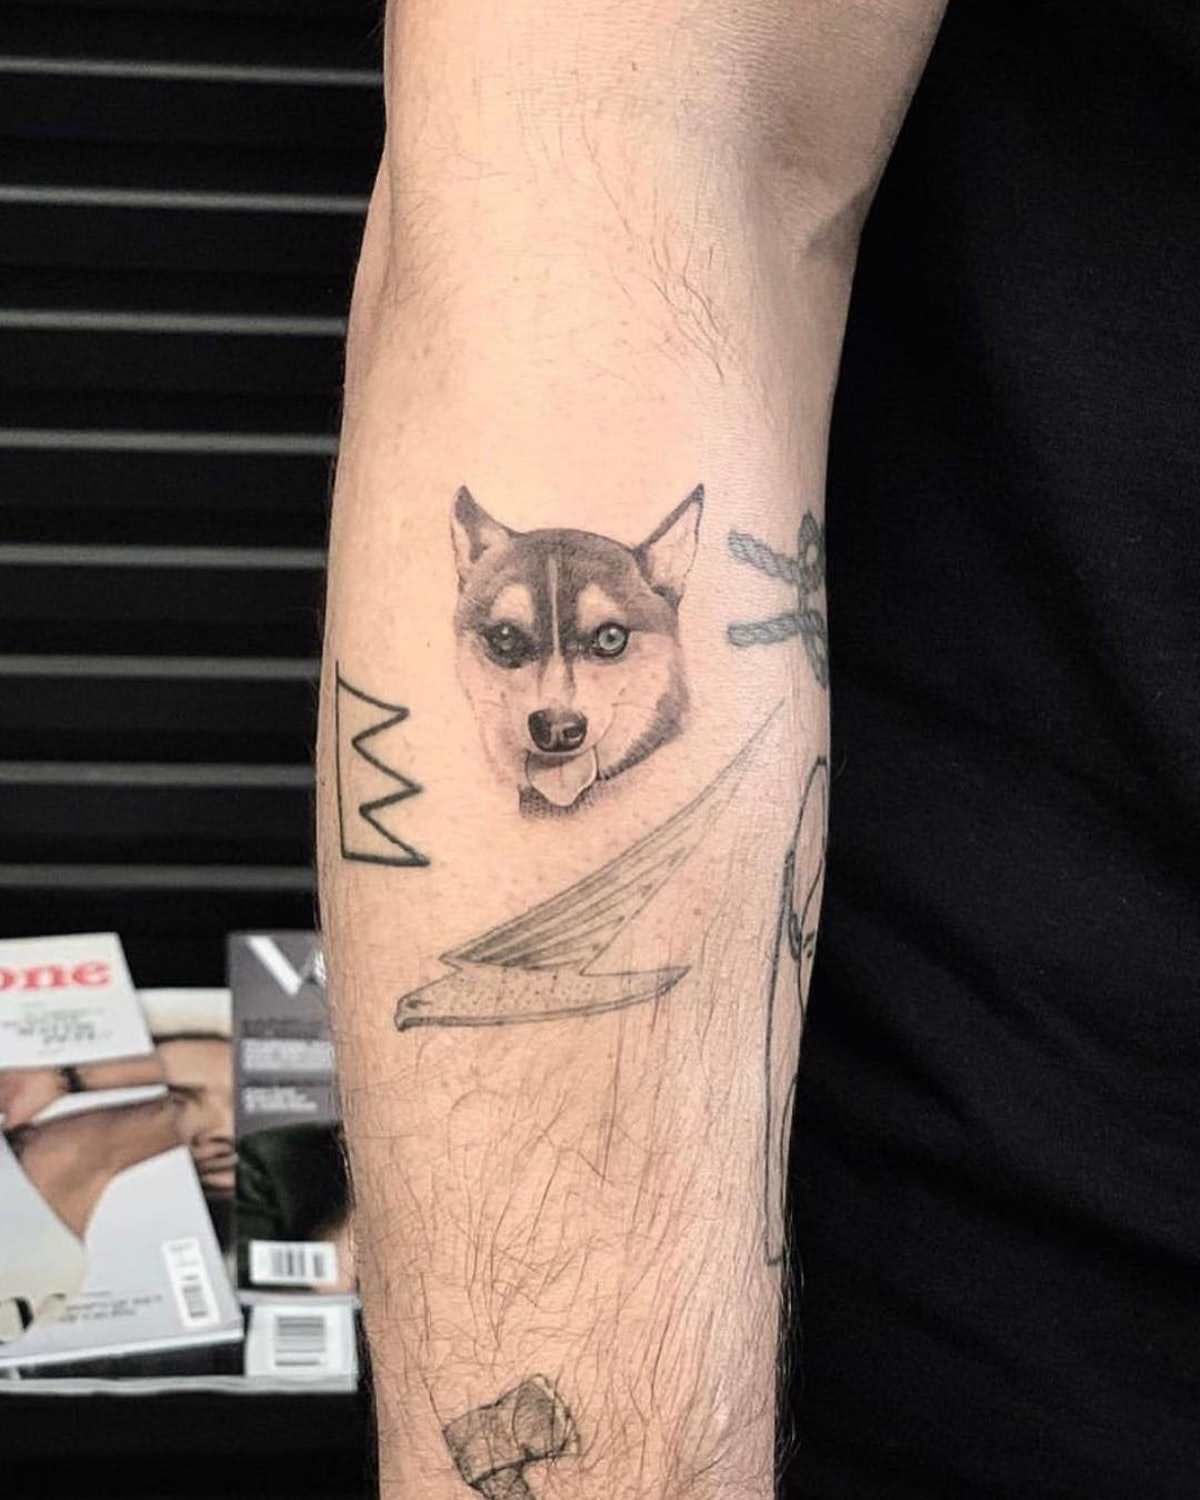 Joe Jonas and Sophie Turner have a matching tattoo of their late dog.